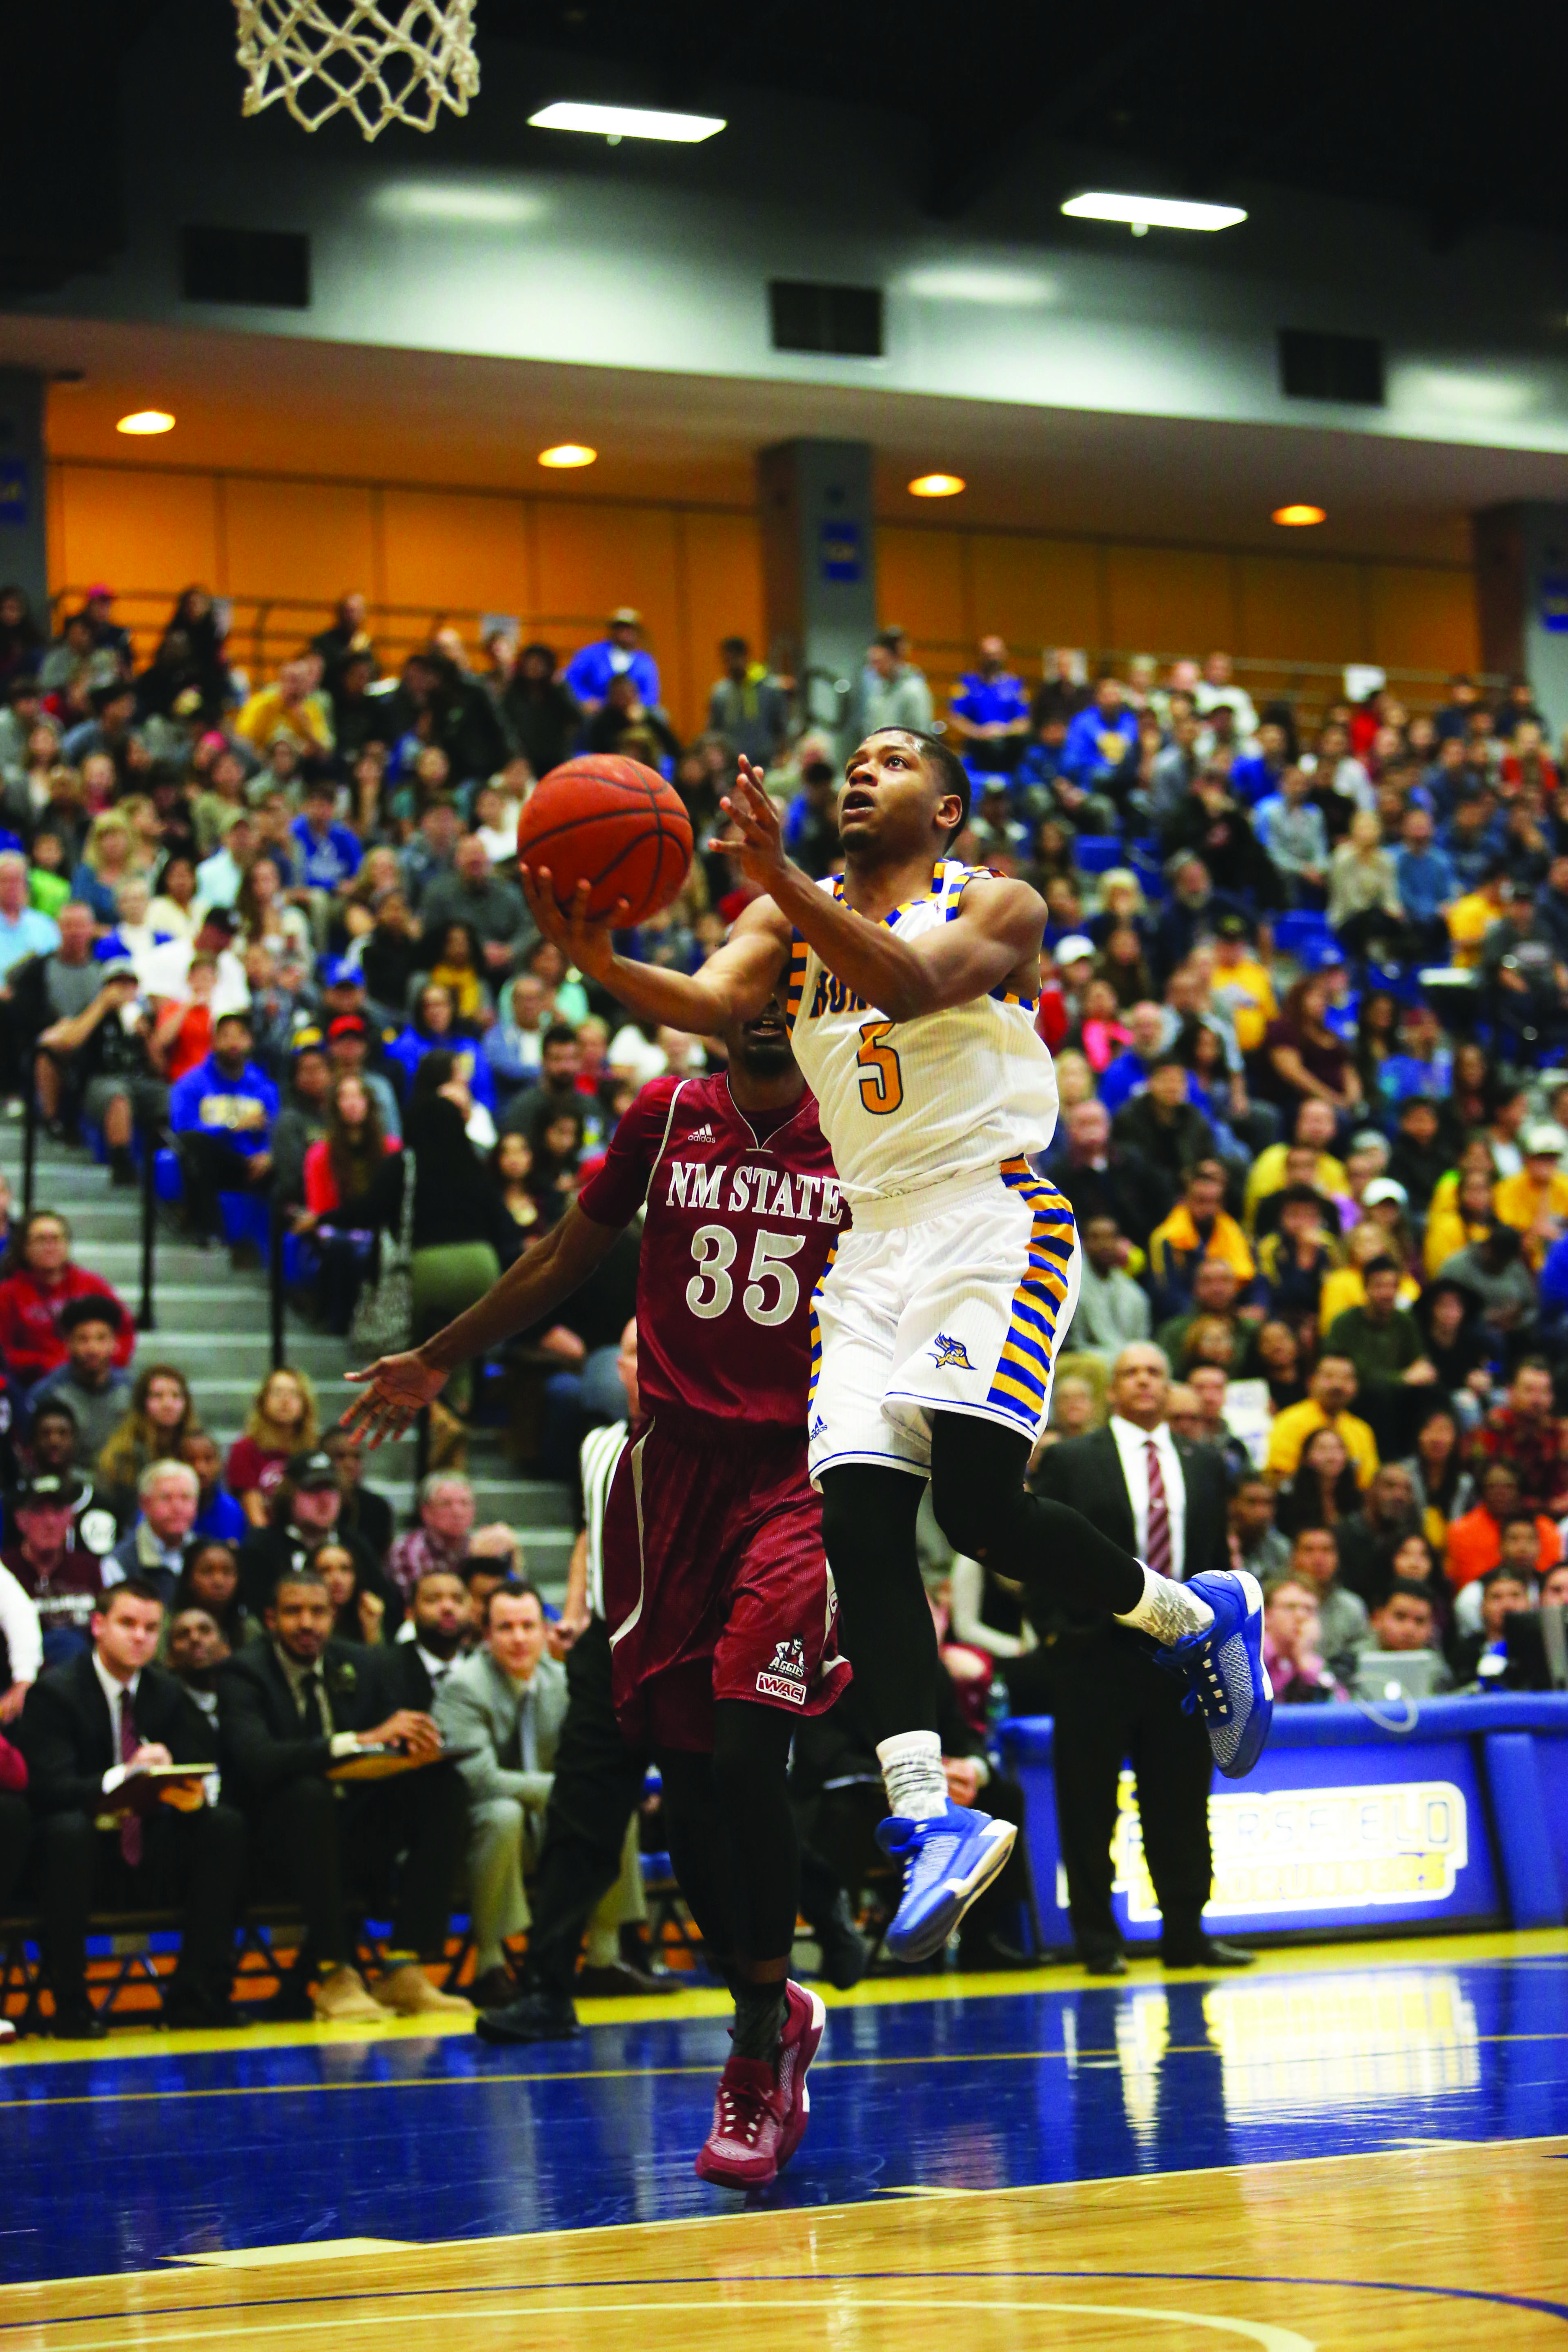 CSUB junior guard Dedrick Basile goes up for a layup against New Mexico State on Jan. 23 in the Icardo Center. Photo by AJ Alvarado/The Runner